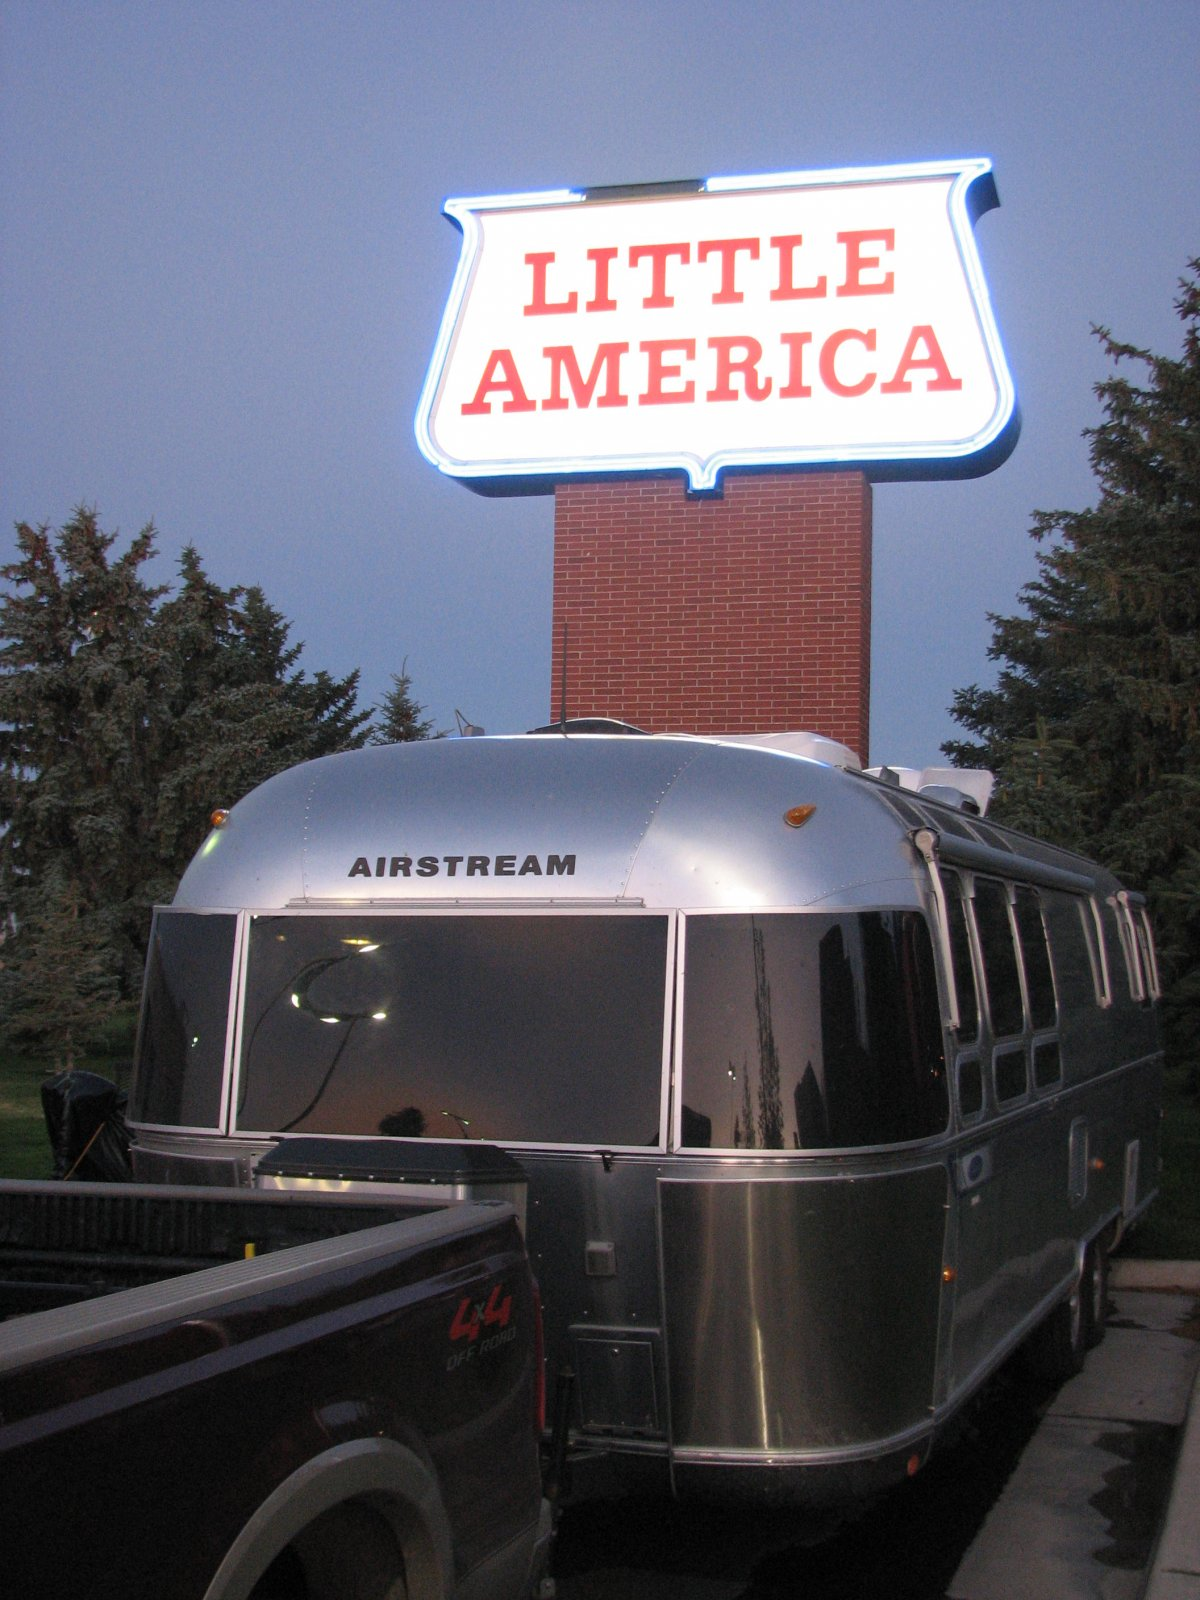 Click image for larger version  Name:Little_America.jpg Views:81 Size:287.8 KB ID:107705